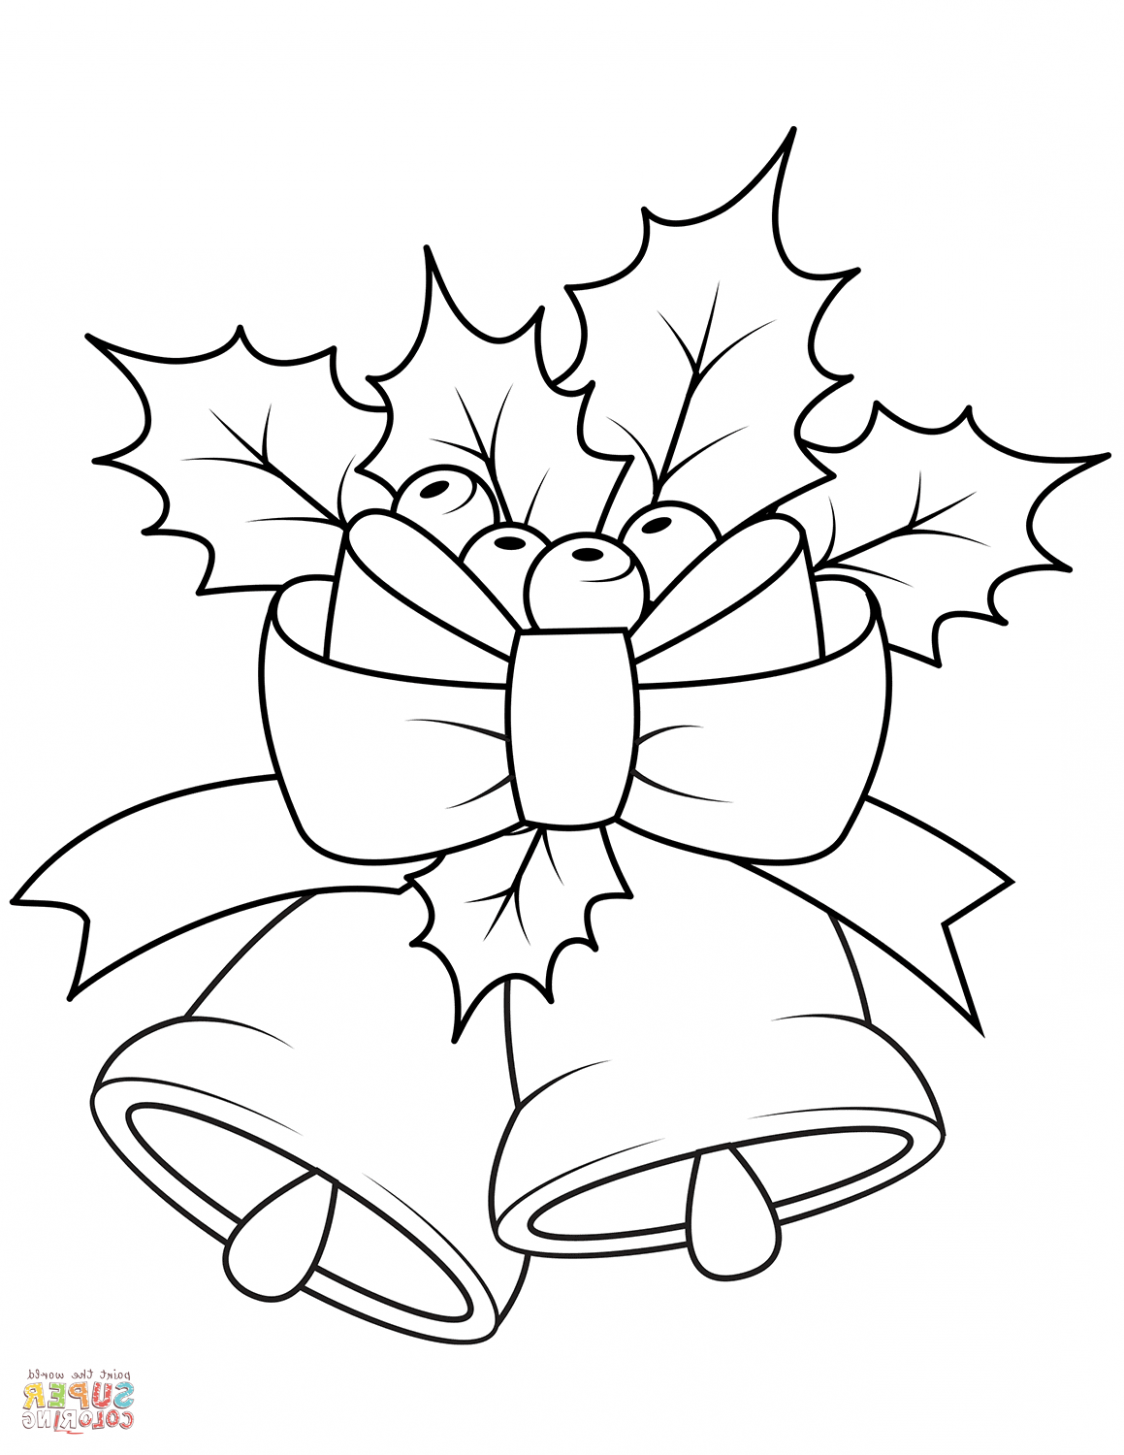 This Is How Free N Fun Christmas Coloring Pages Will Look Like In 21 Years Time Co Christmas Tree Coloring Page Christmas Coloring Pages Super Coloring Pages